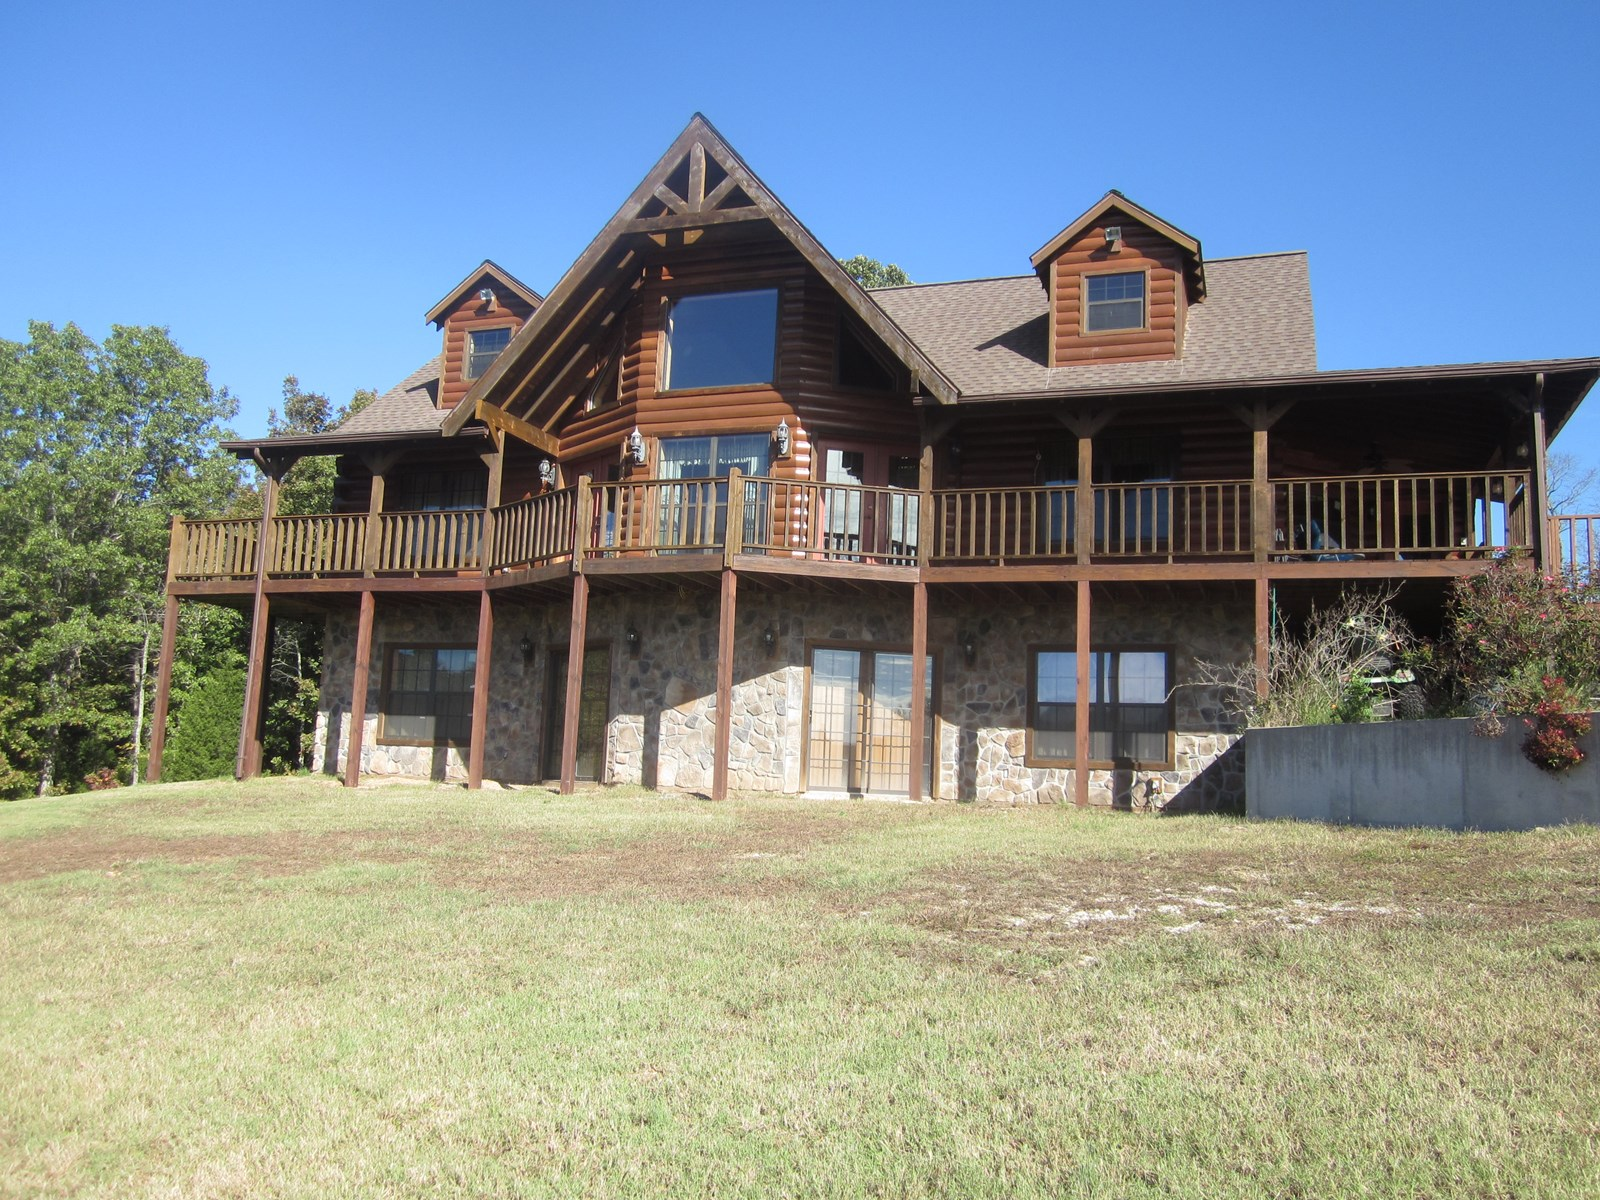 LUXURIOUS LOG HOME FOR SALE IN THE OZARKS,NEAR YELLVILLE, AR